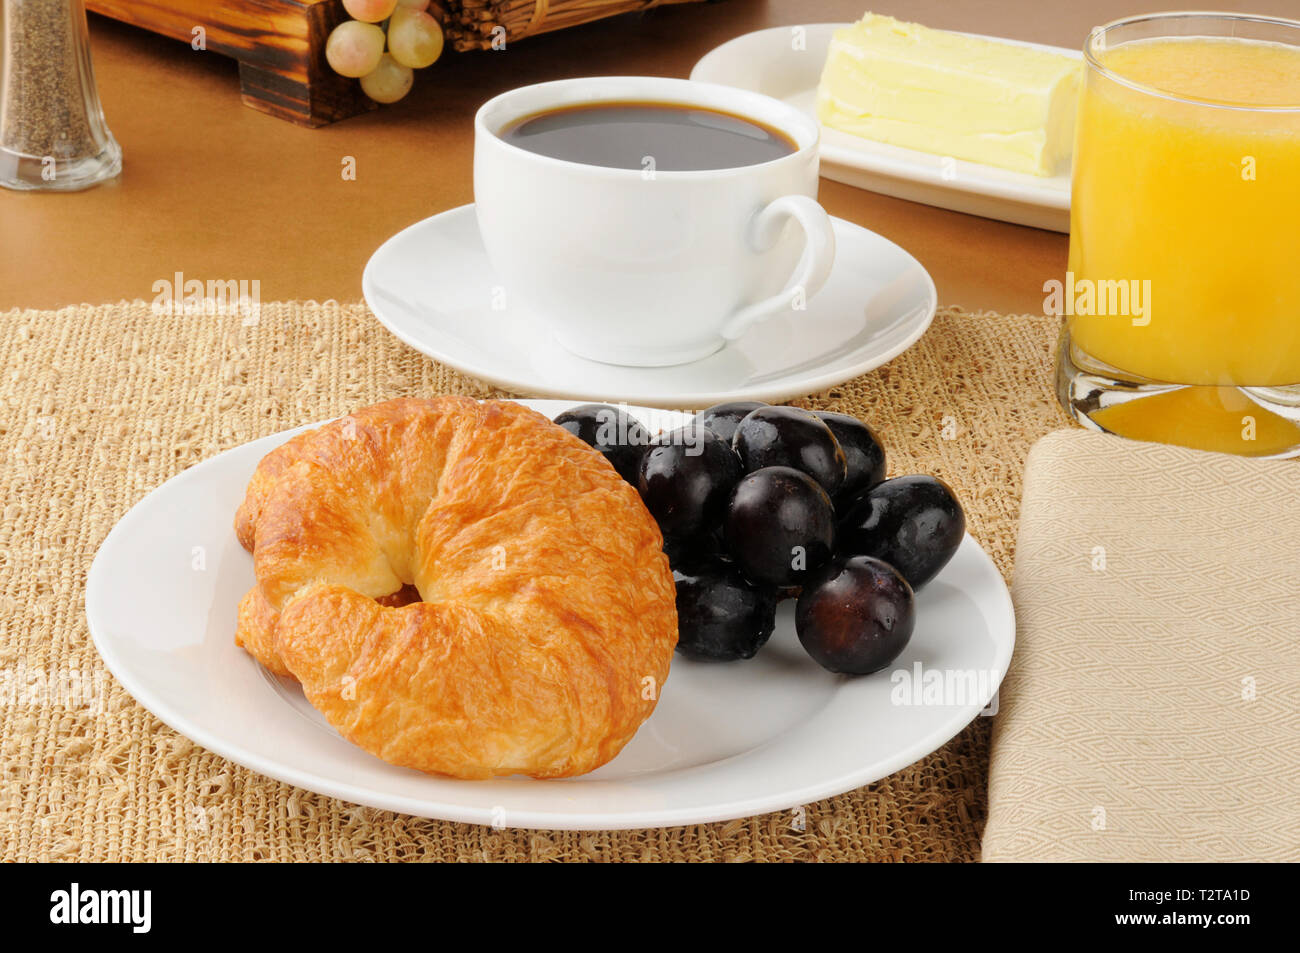 A croissant with grapes and coffee - Stock Image